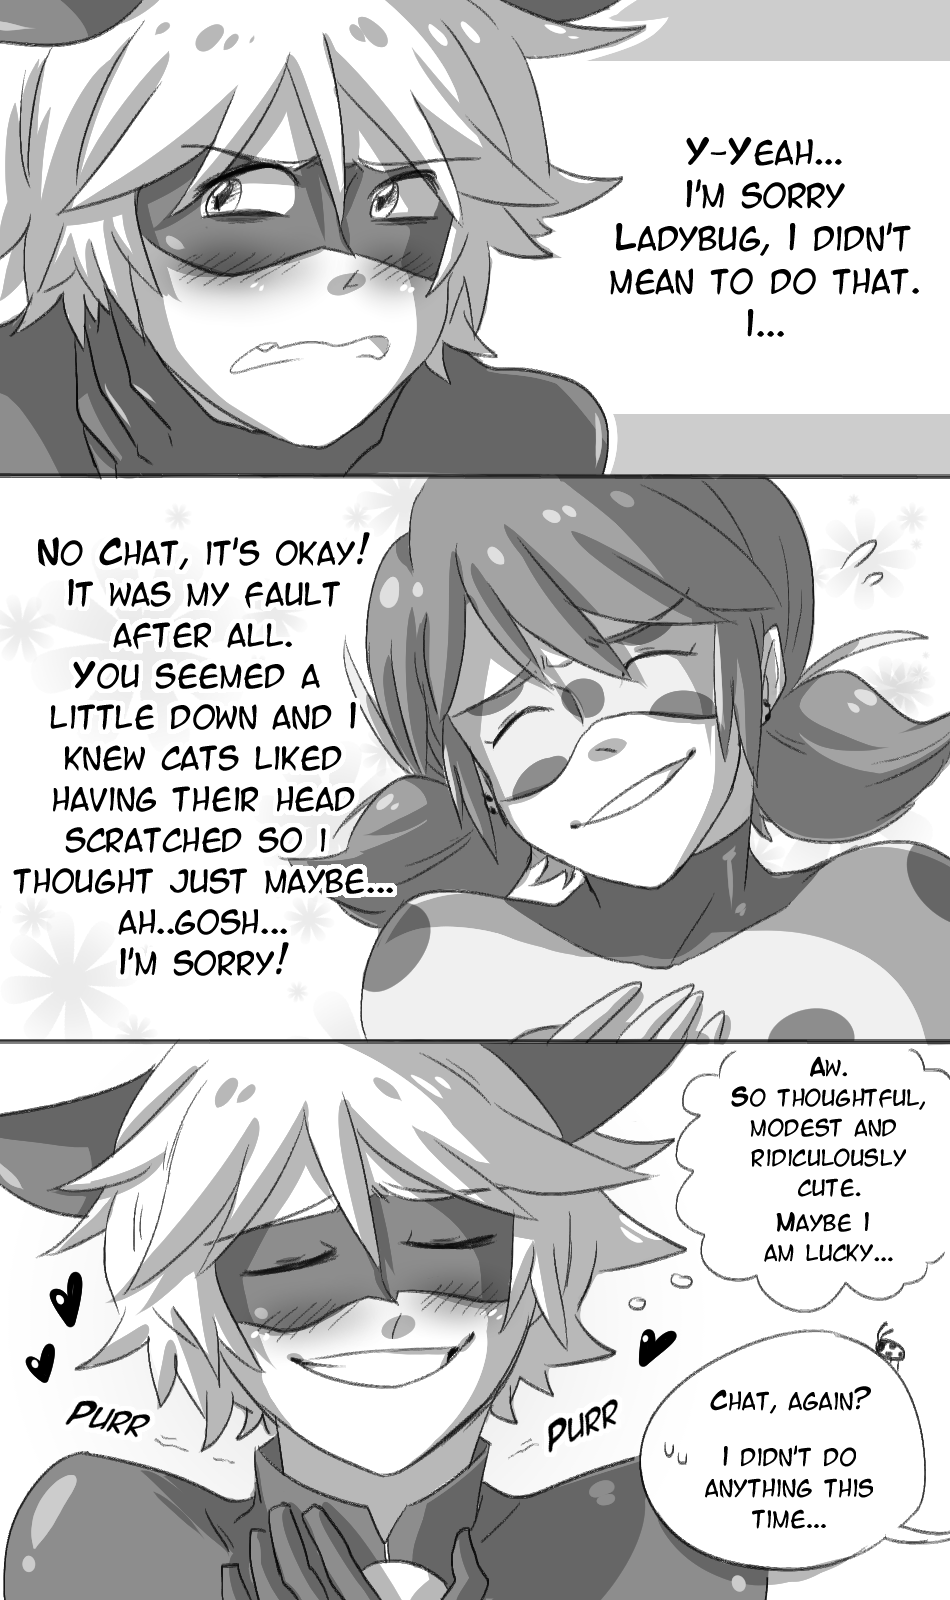 A Little Comic About How Chatu0027s Cat Tendencies Can Sometimes Embarrass Him.  Especially Around Ladybug. U201d